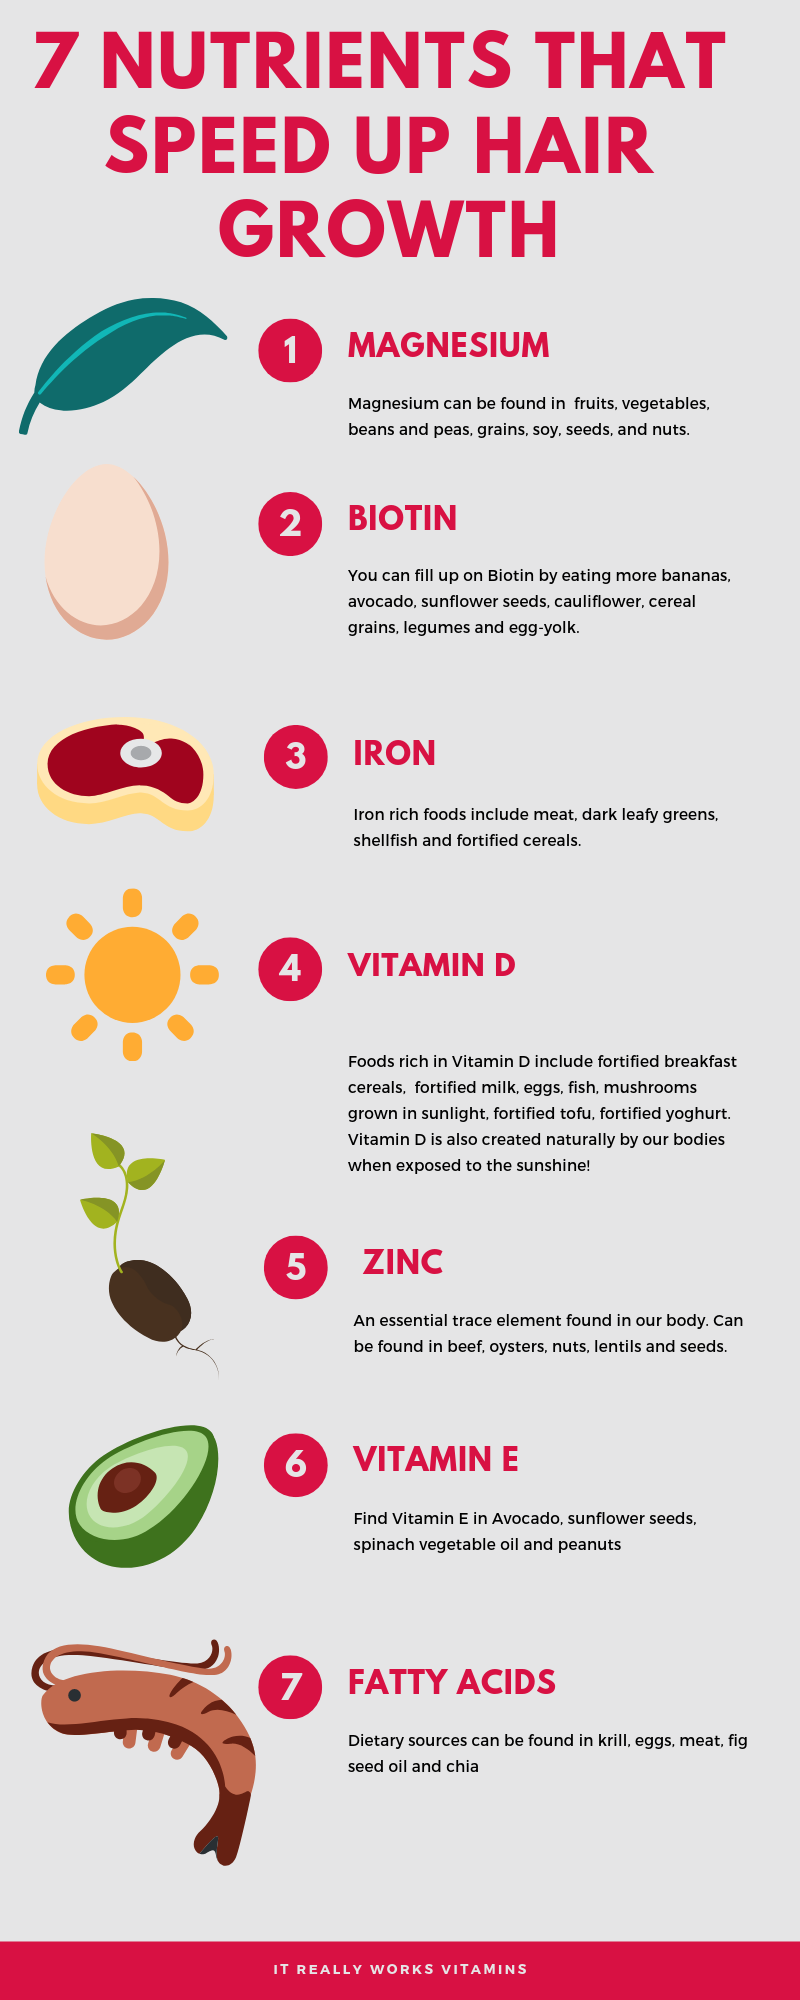 7 Vitamins That Speed Up Hair Growth